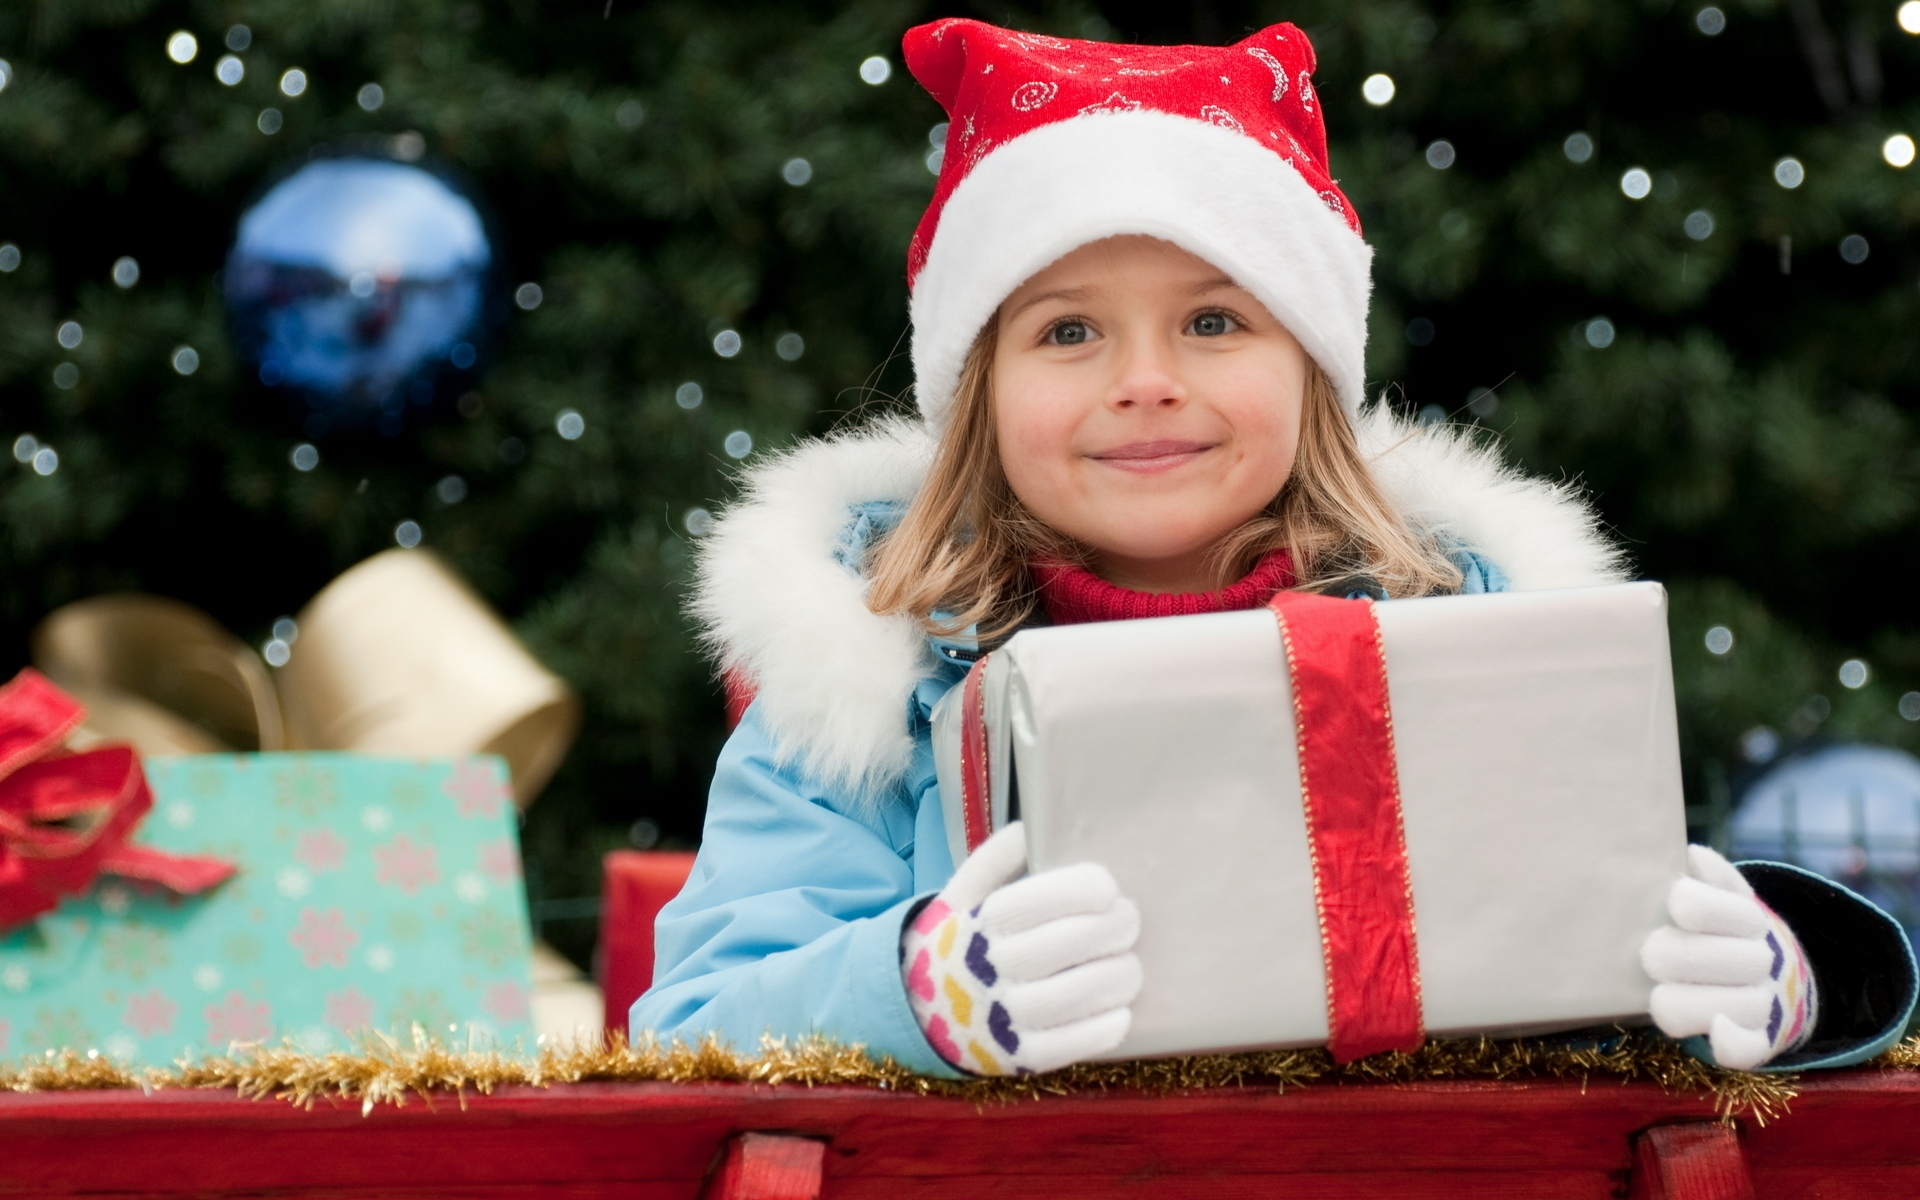 Christmas Gifts For Privileged Kids, Top Christmas Gifts For Privileged Kids